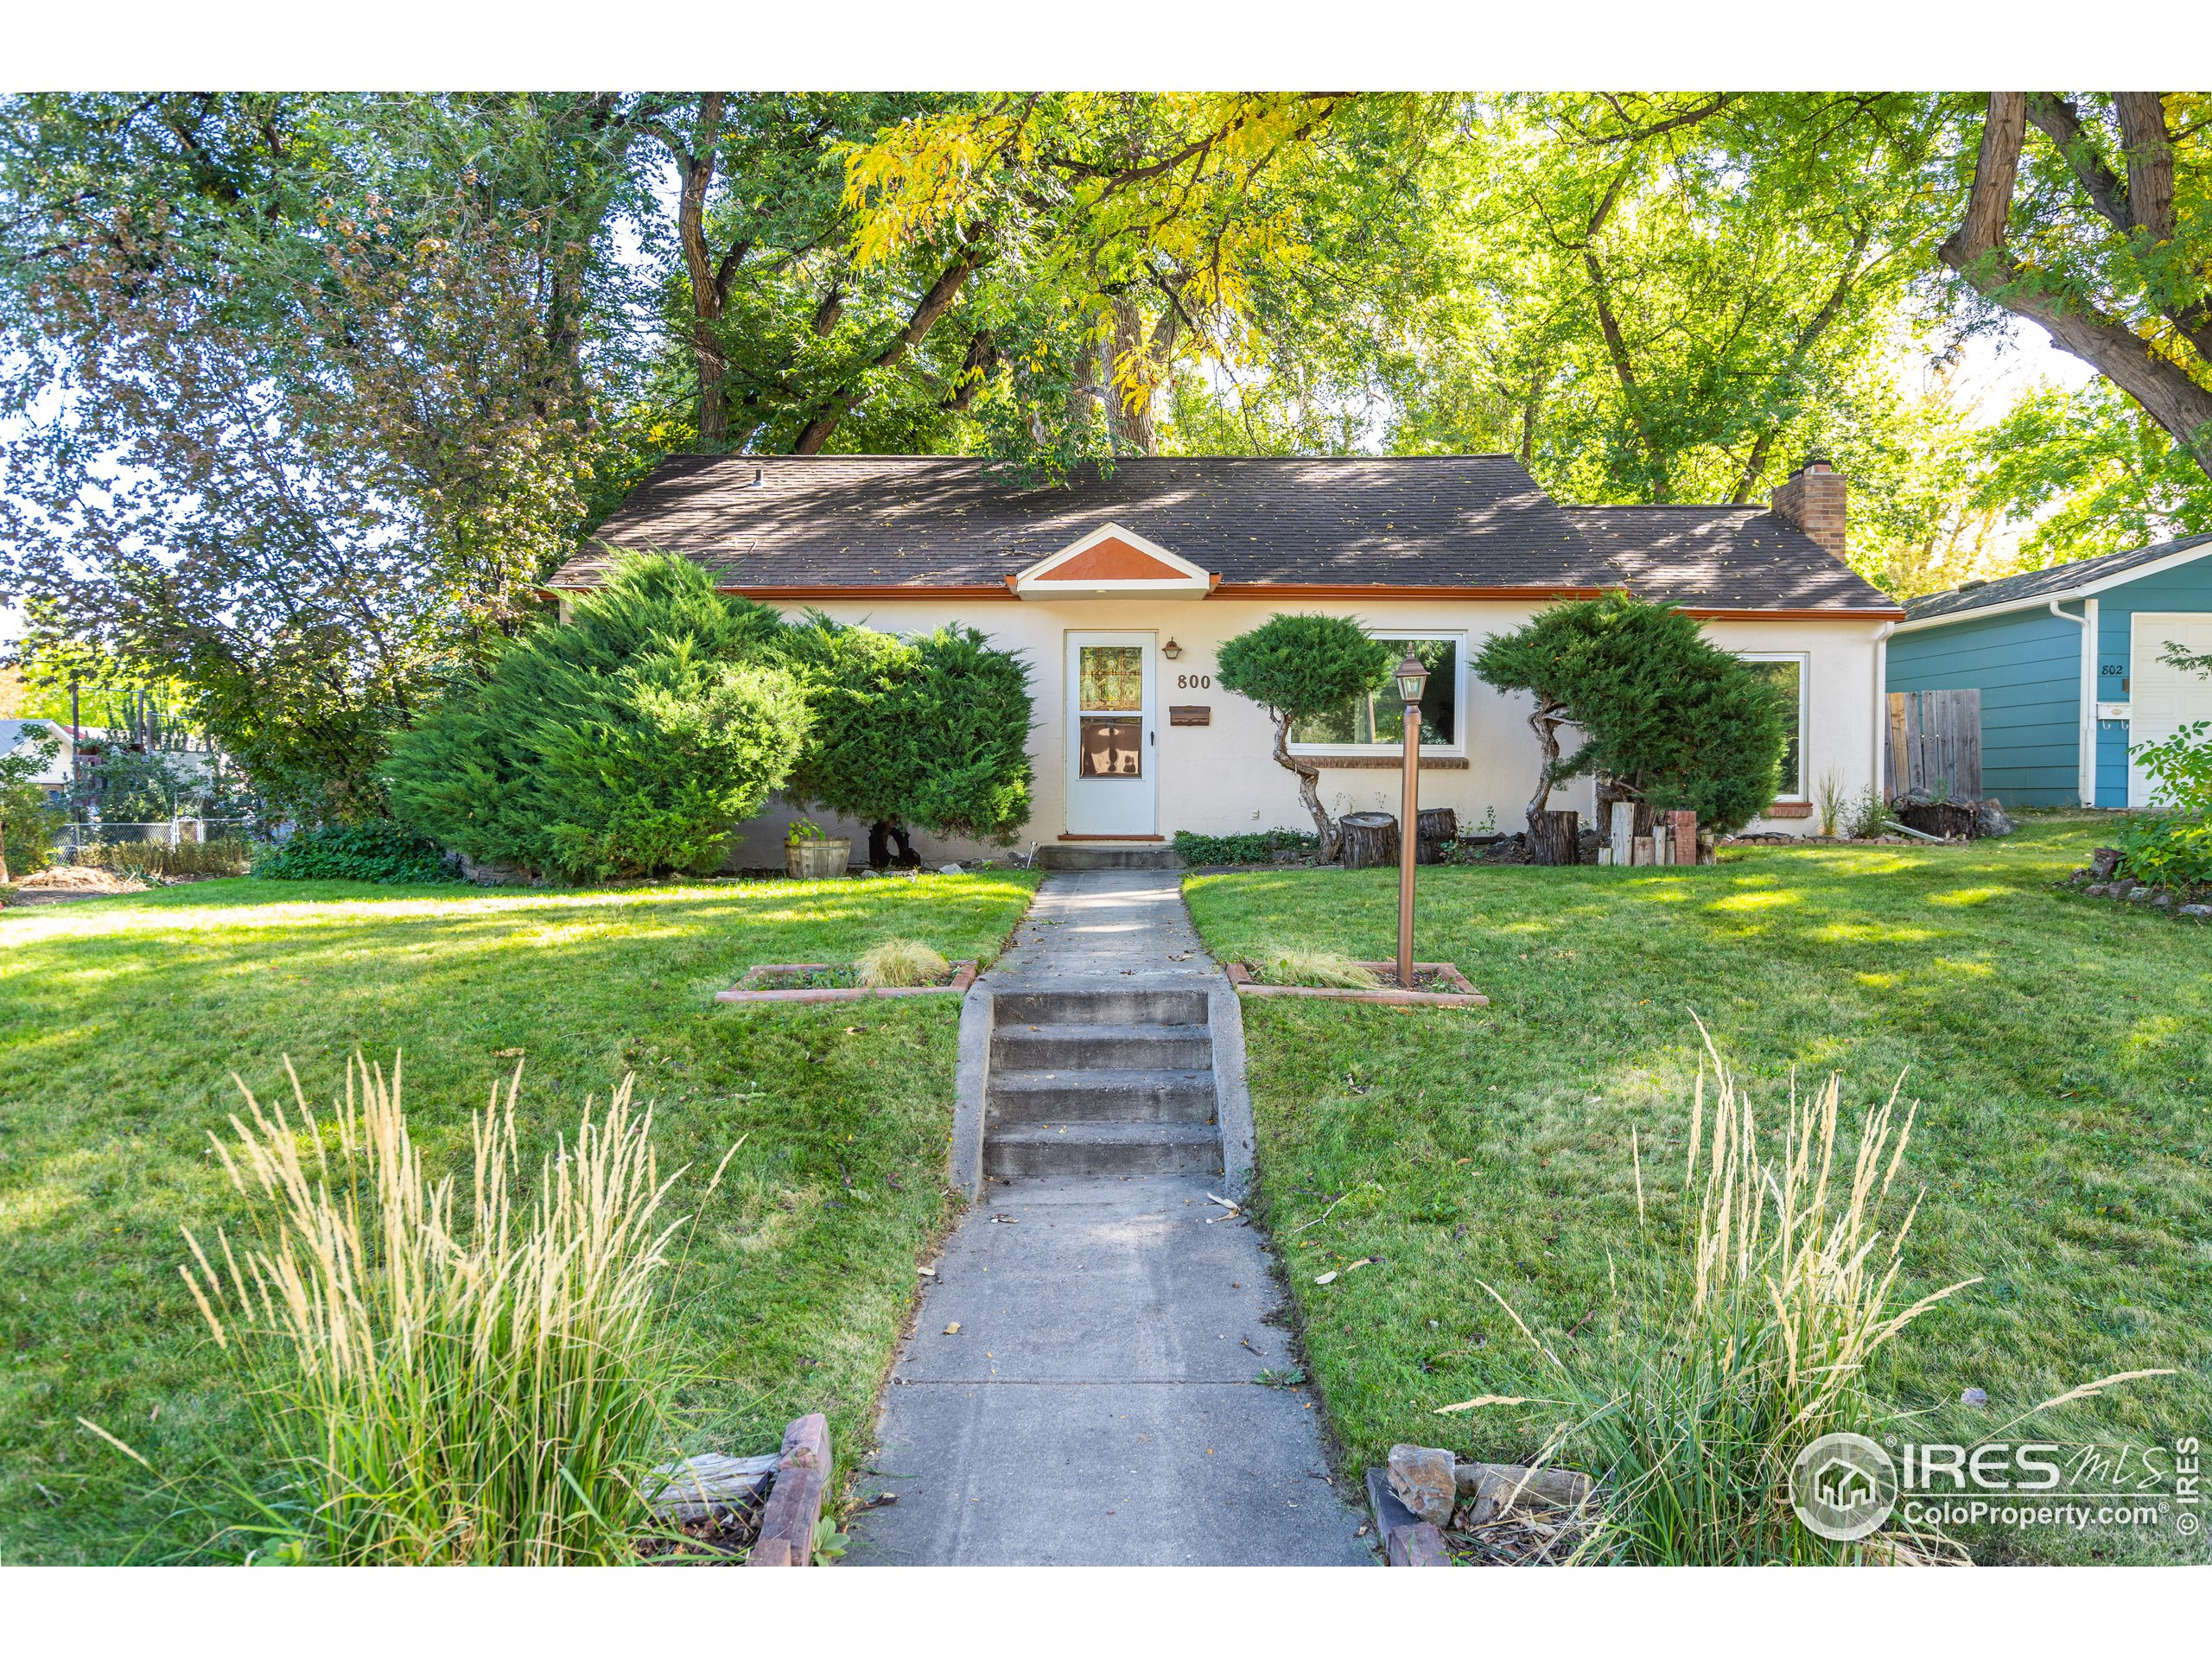 800 Stover St, Fort Collins, CO 80524